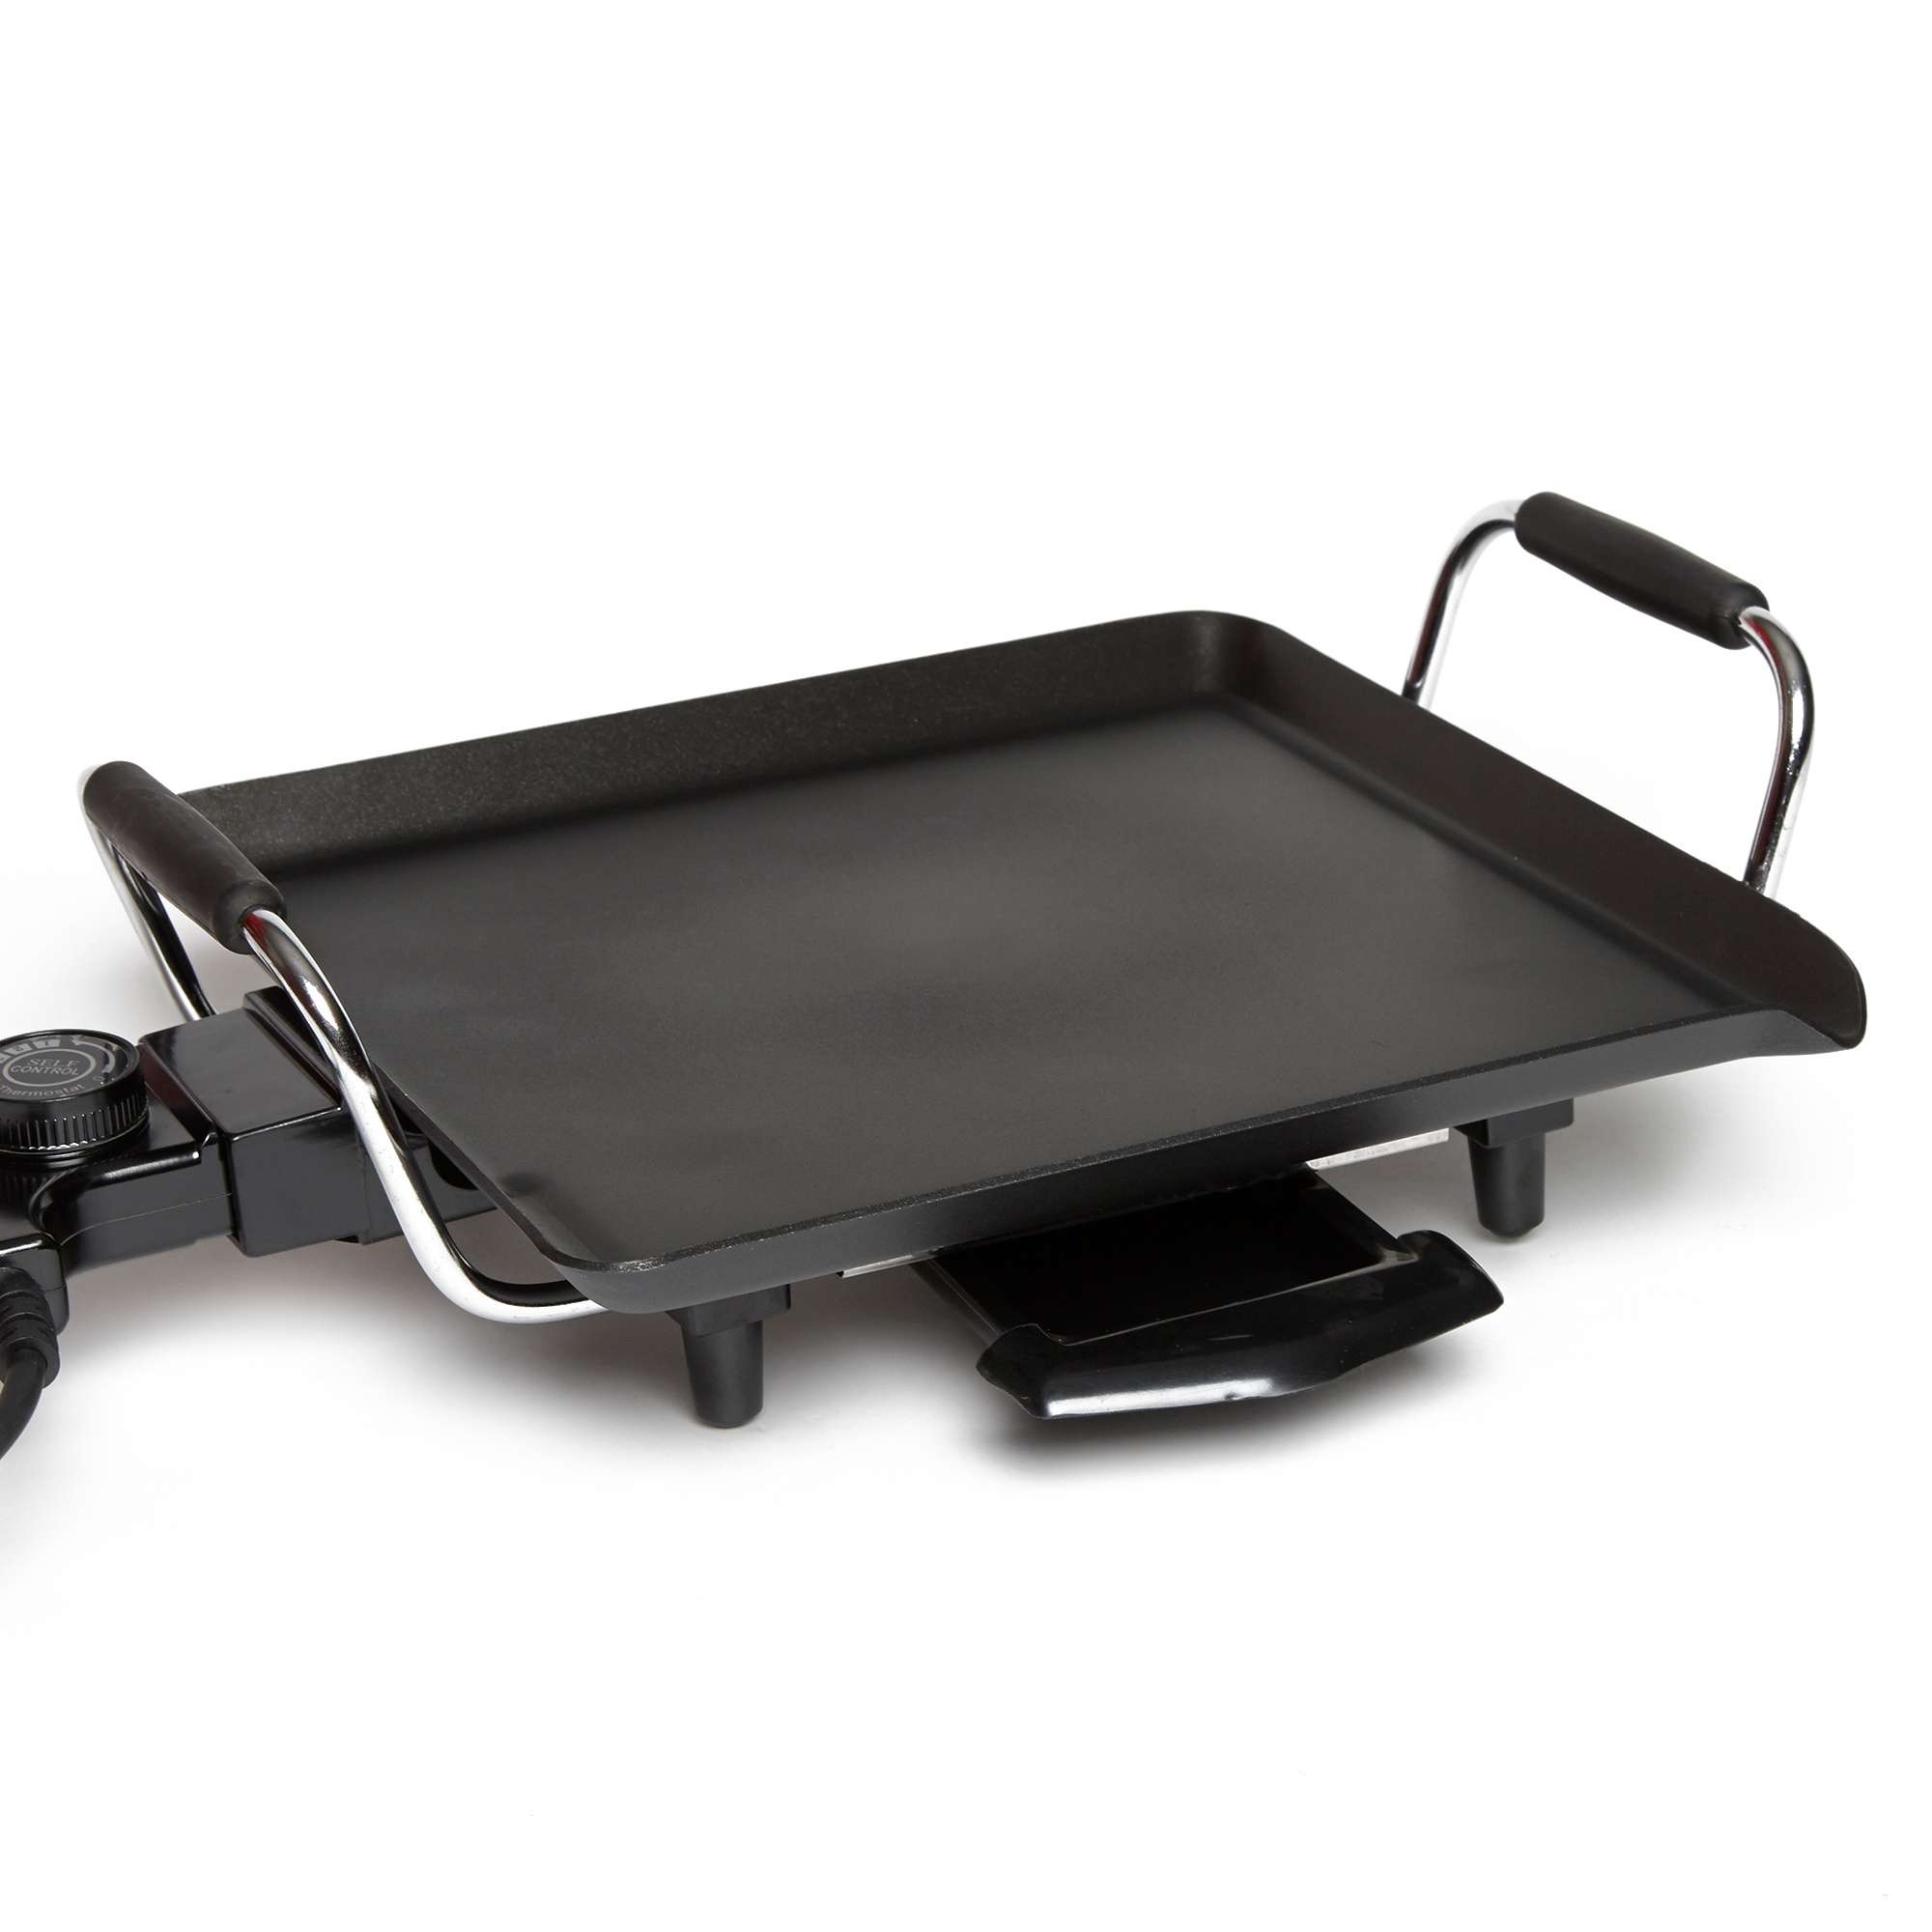 QUEST Healthy Griddle